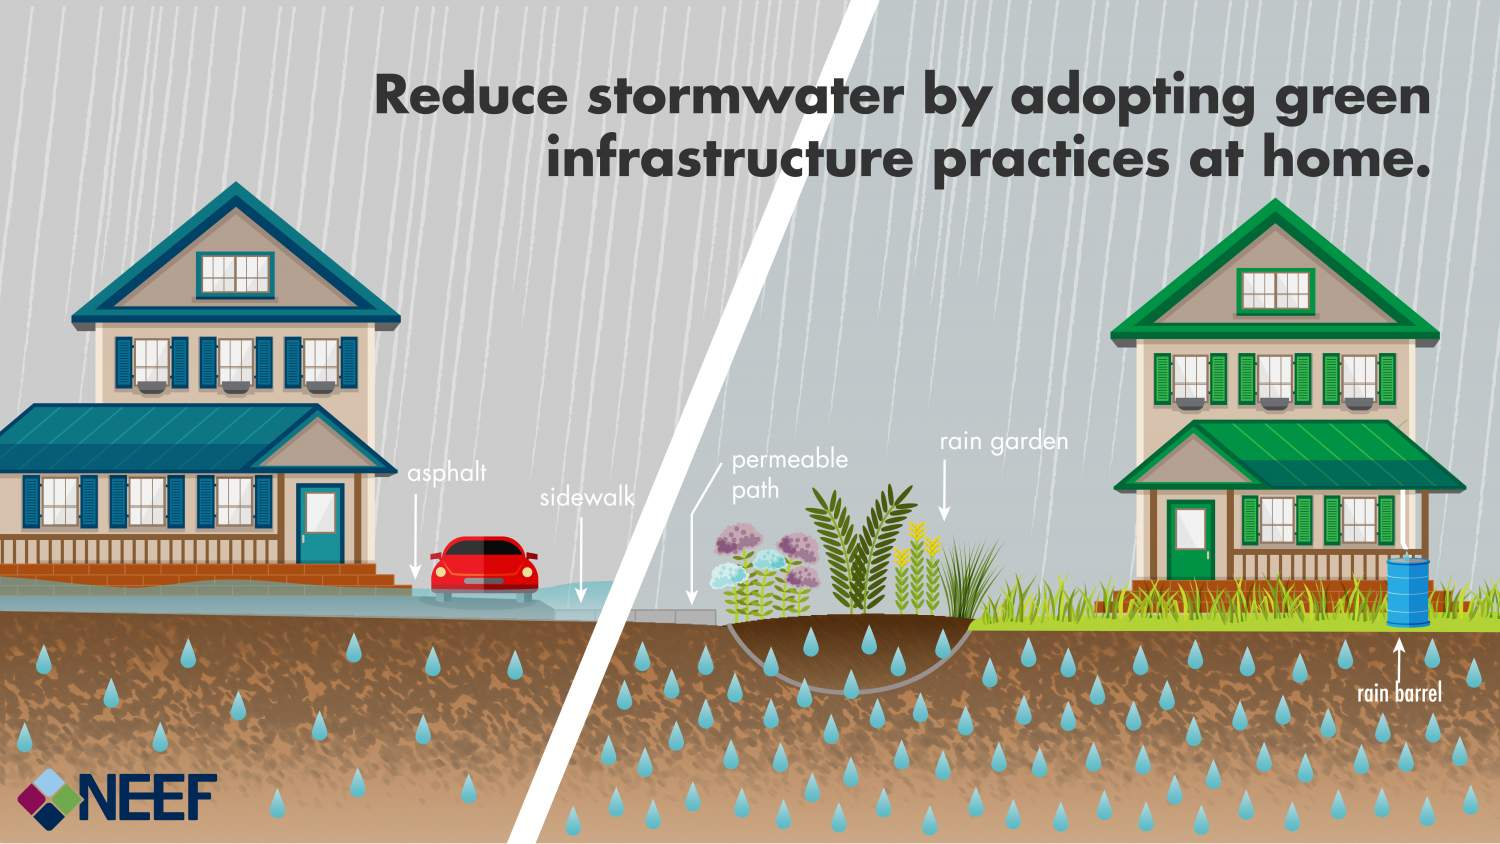 Reduce stormwater by adopting green infrastructure practices at home.